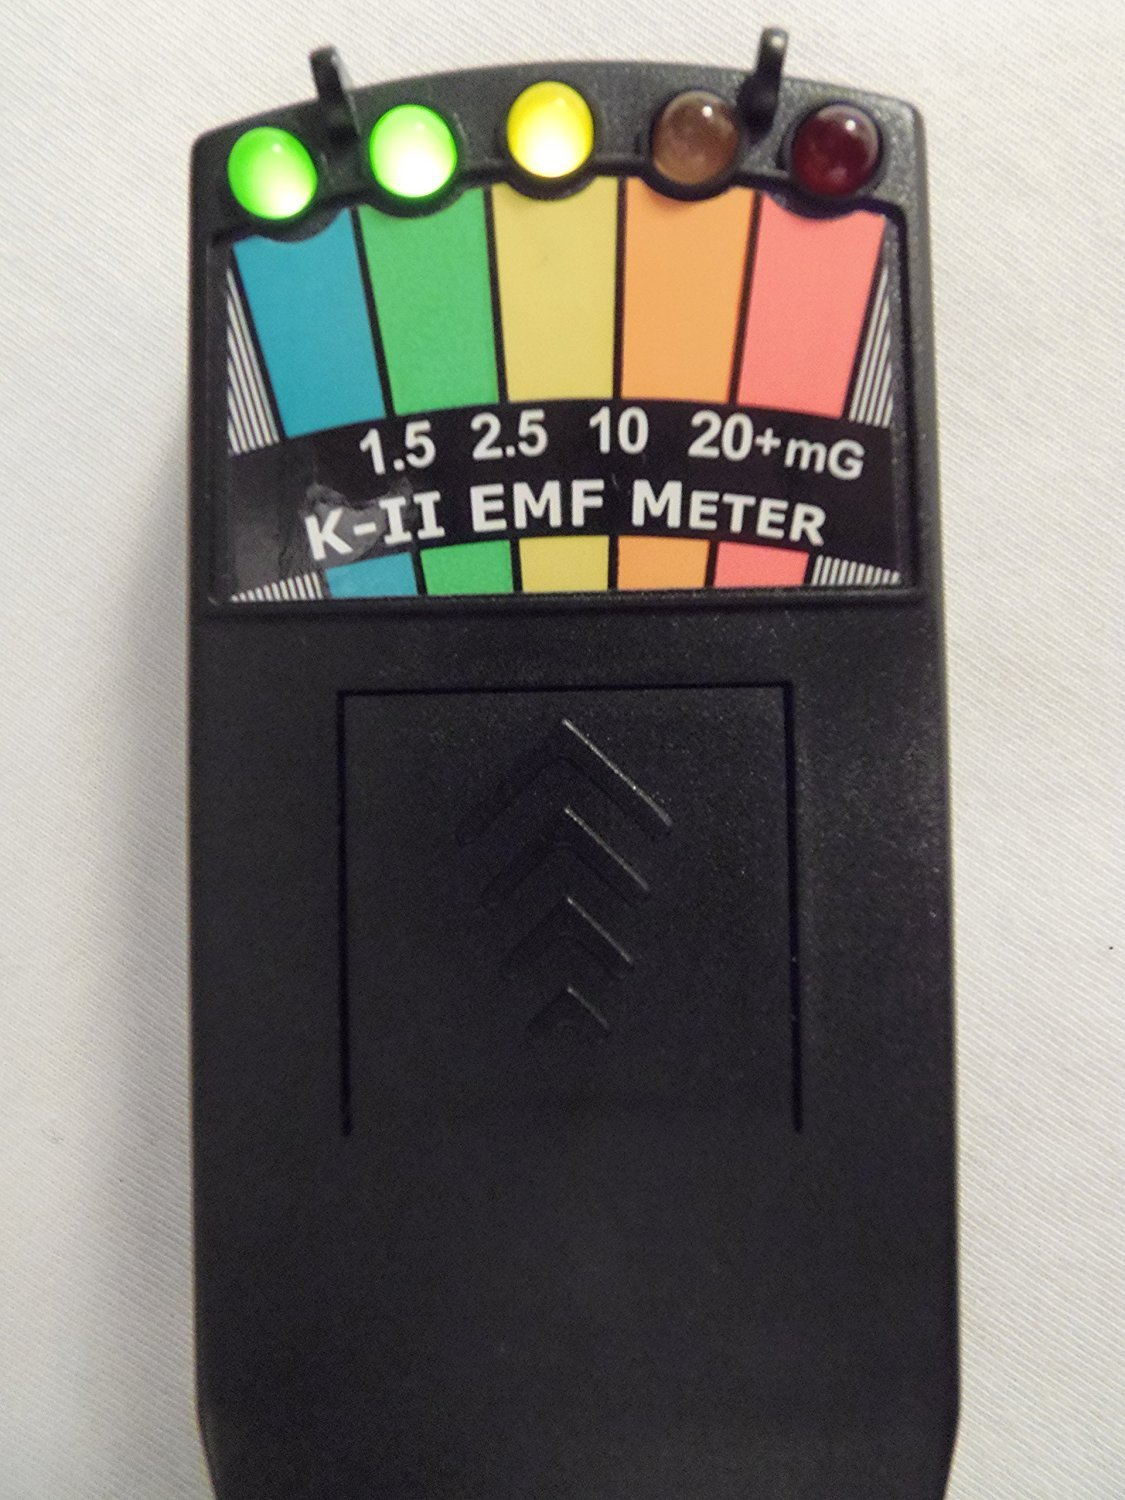 KII EMF Meter Deluxe Black - Paranormal Research Meter